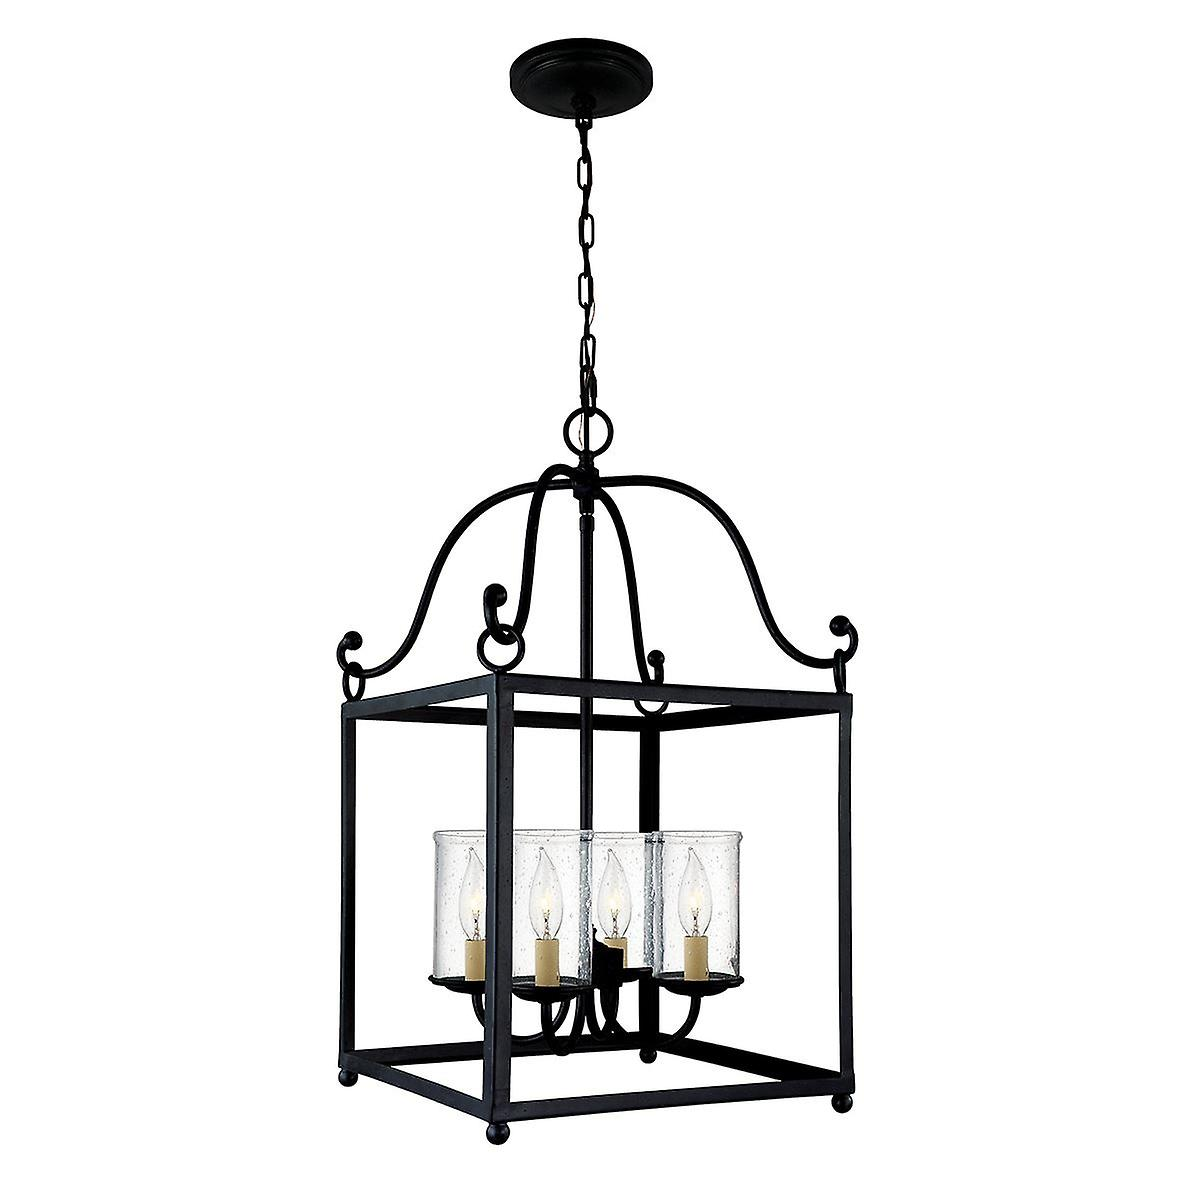 Elstead - 4 Light Pendant - Forged Iron Finish - FE DECLARATION4